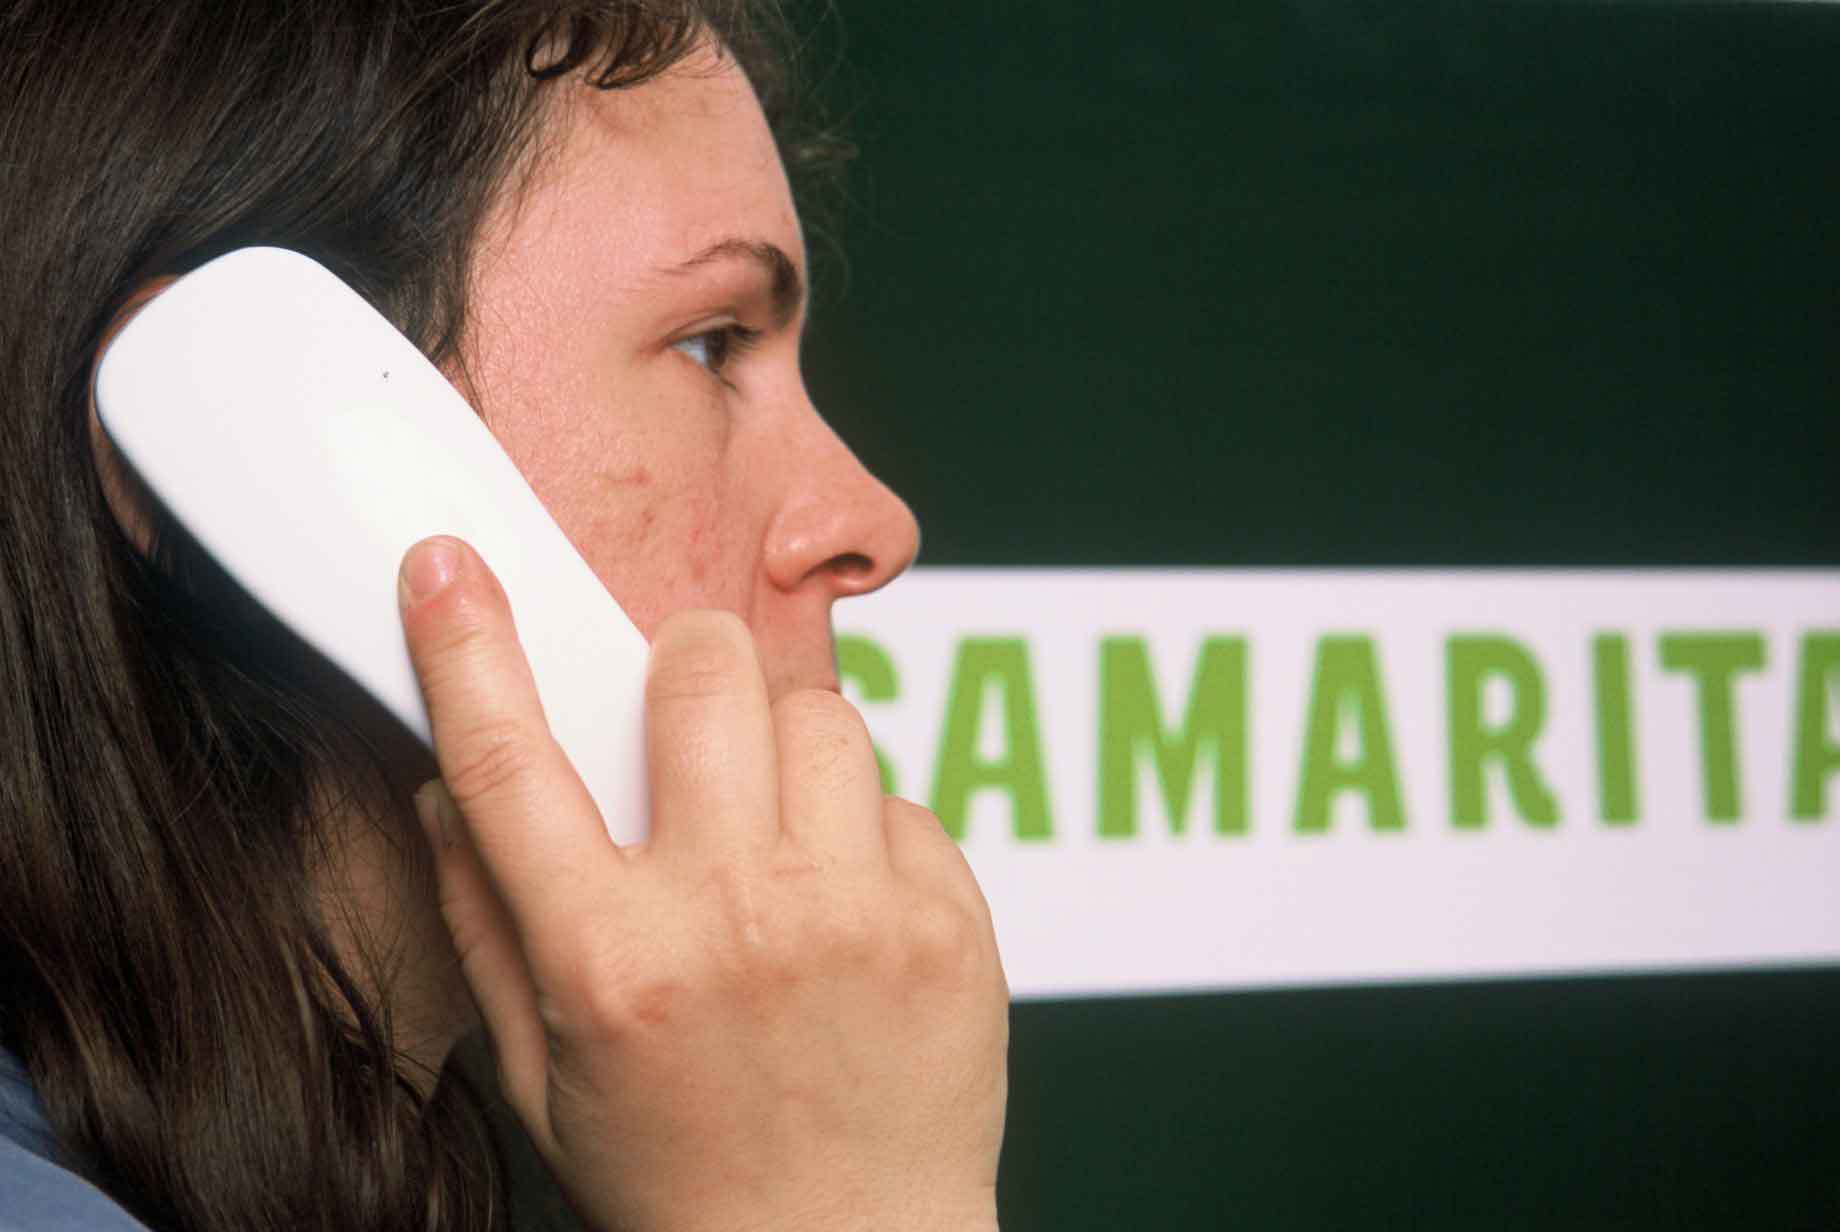 Feeling lonely this Christmas? The Samaritans can help